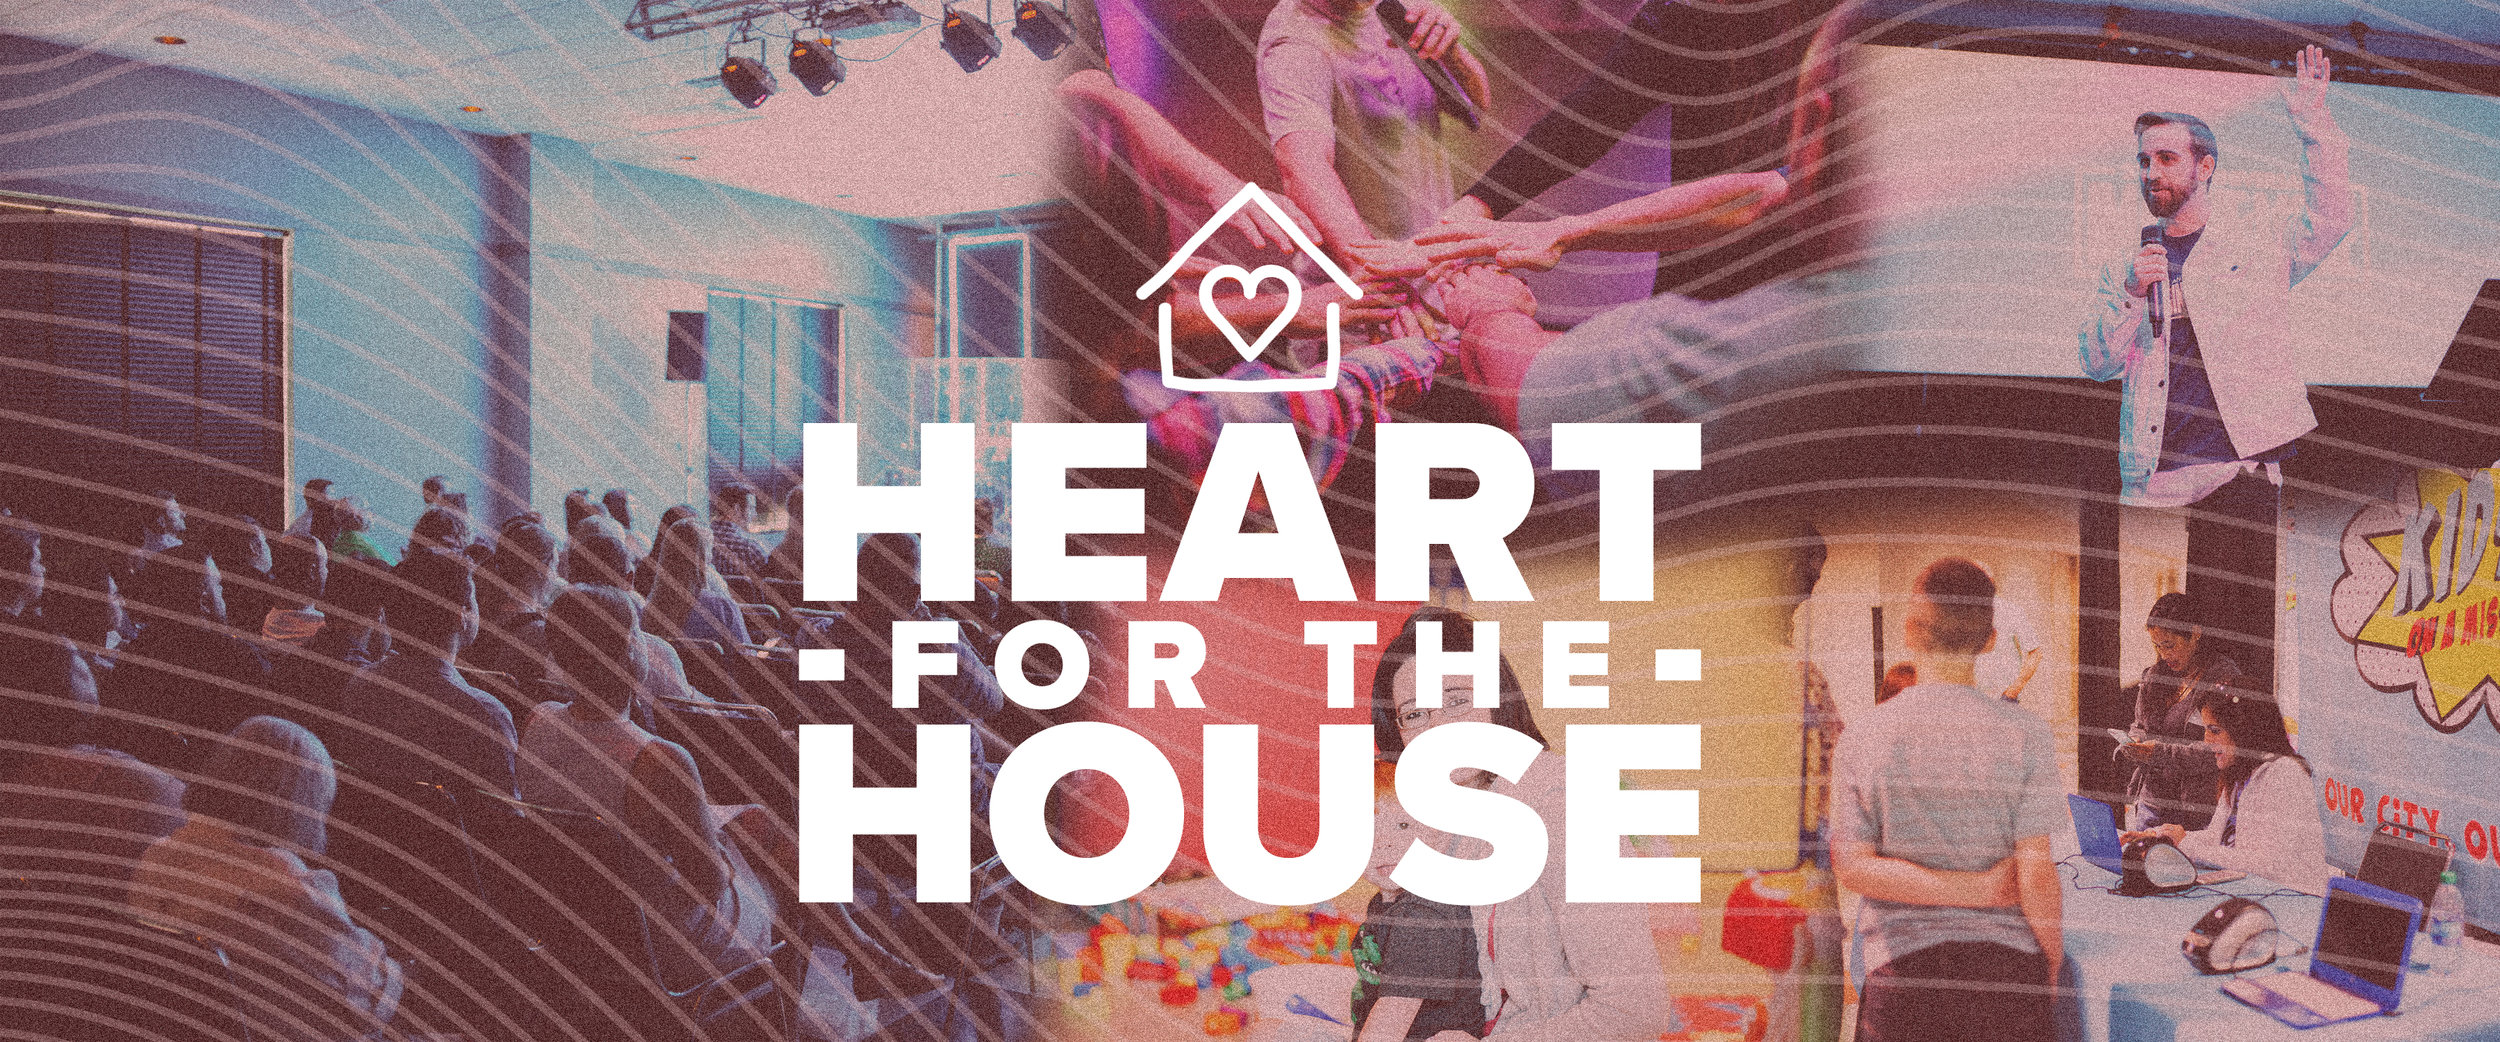 Heart for the House.jpg